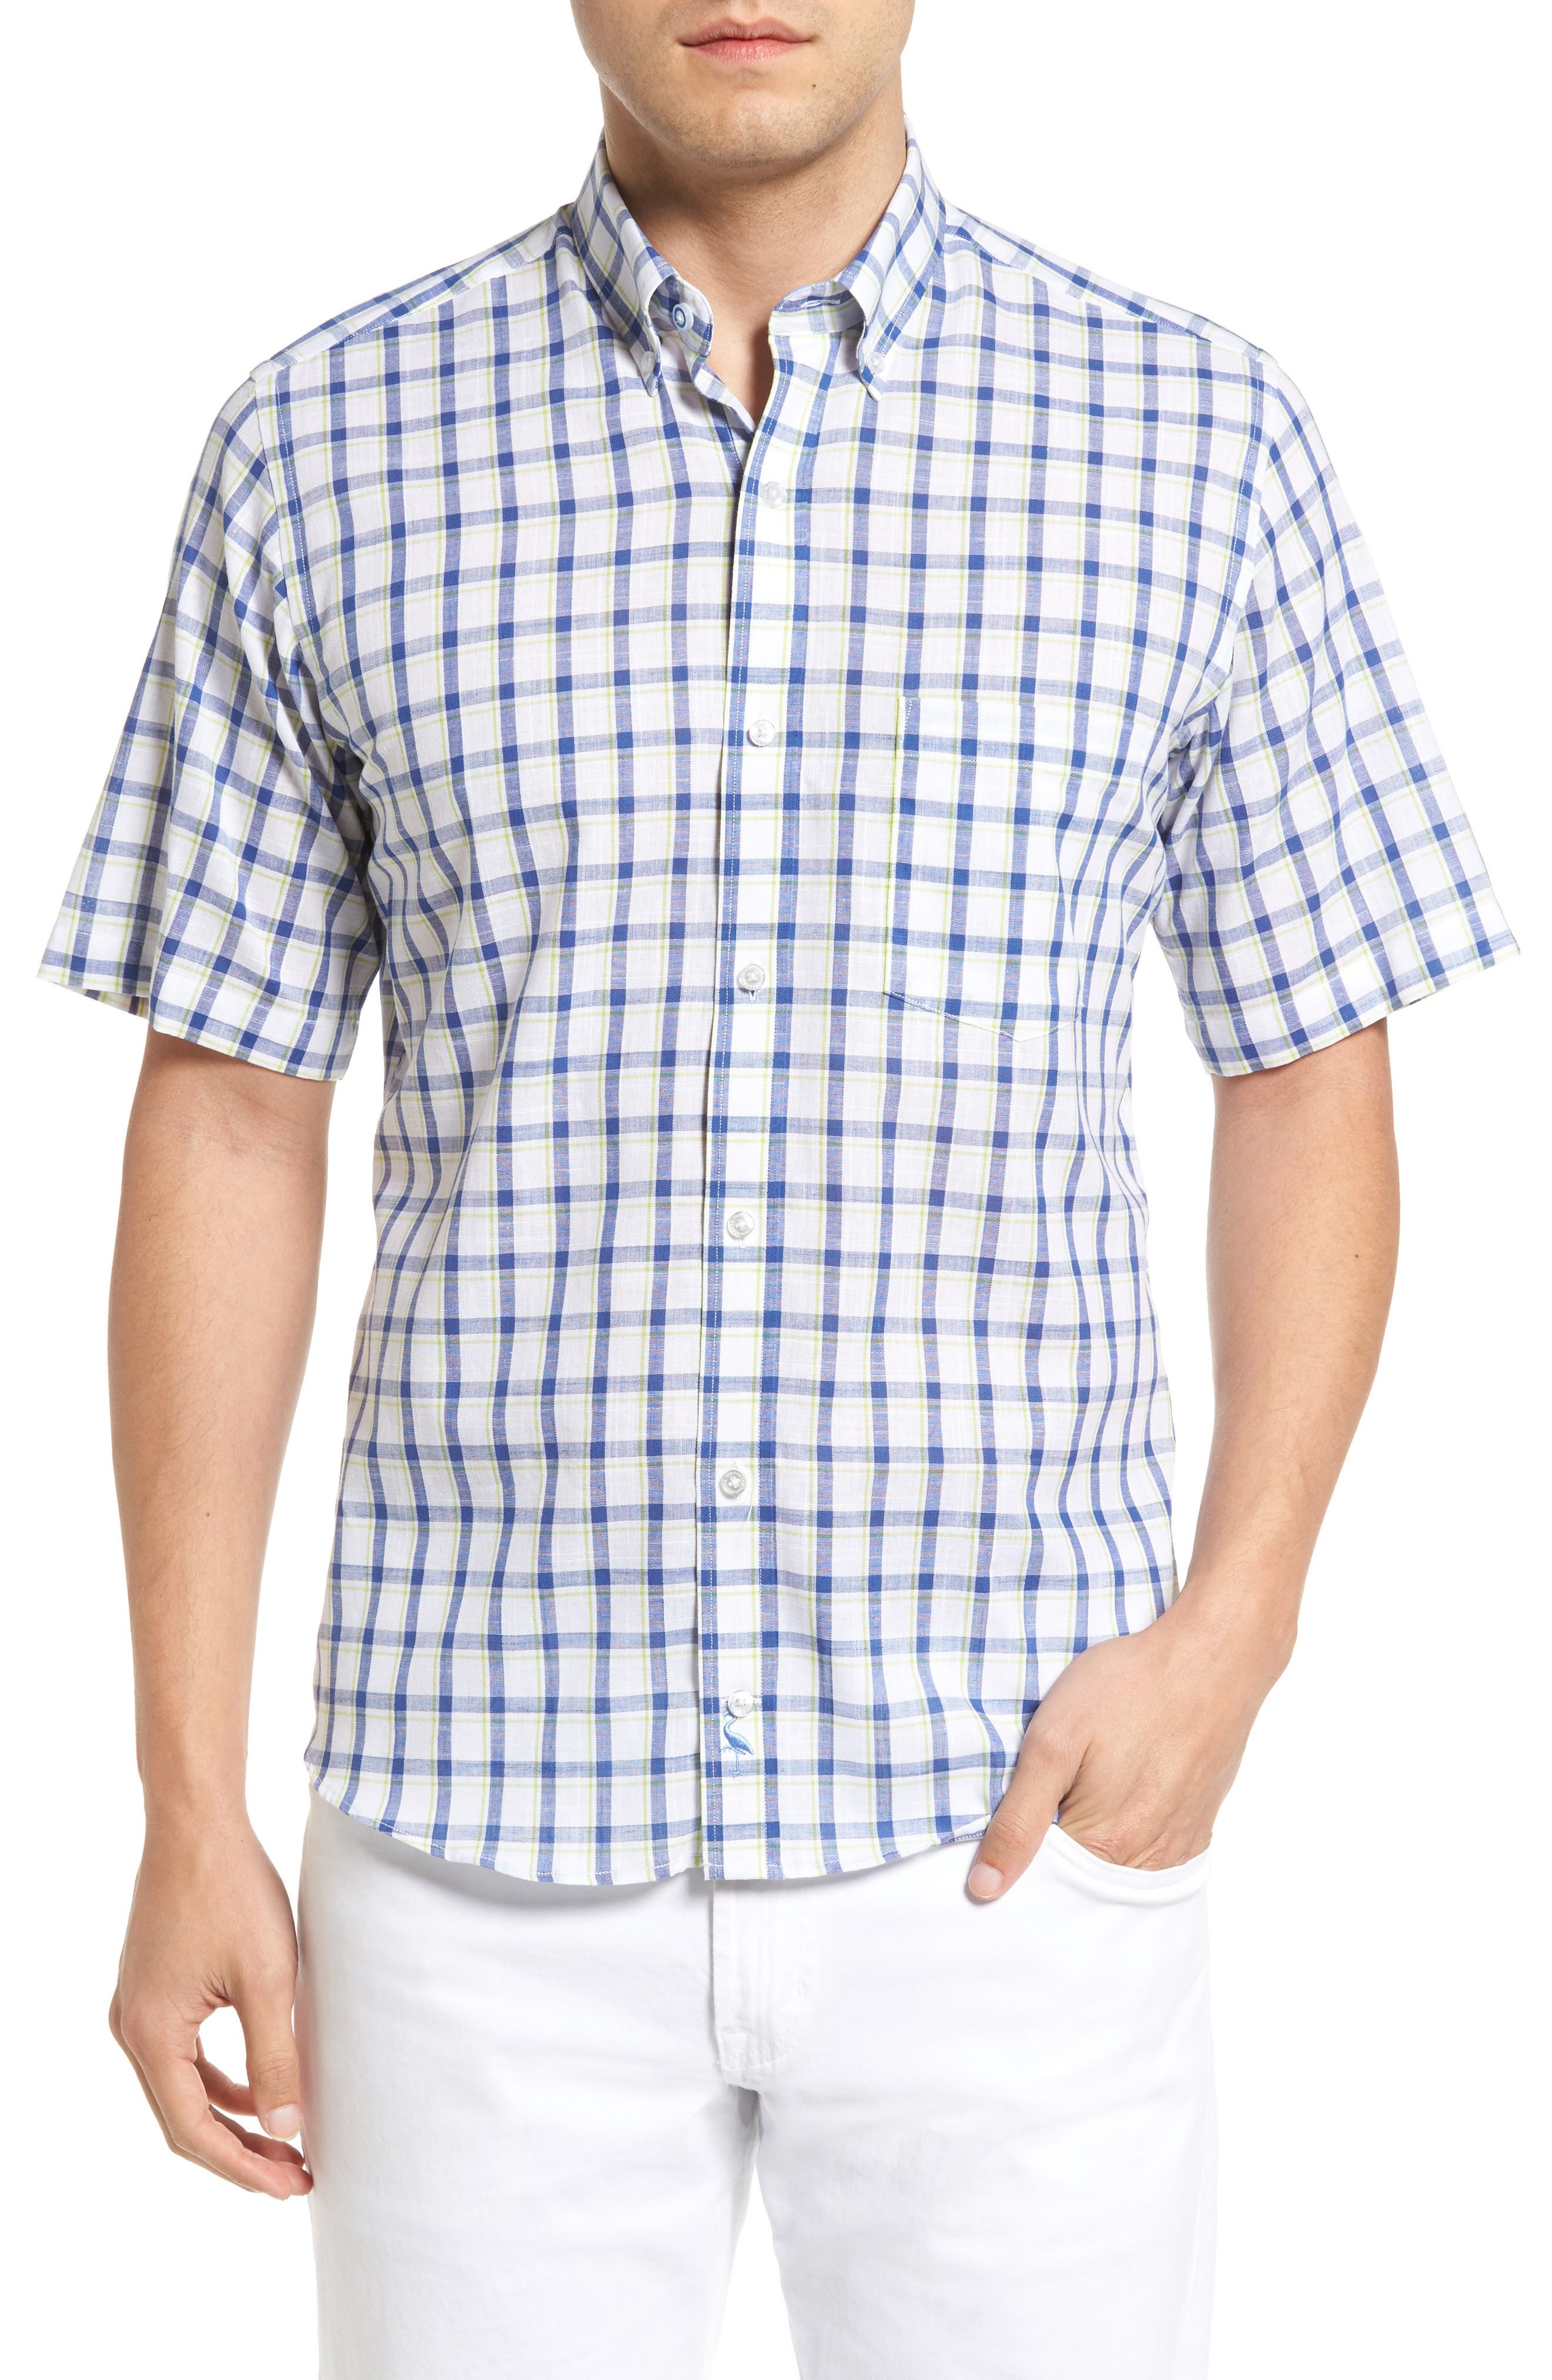 Main Image - Tailorbyrd Manila Regular Fit Short Sleeve Plaid Sport Shirt